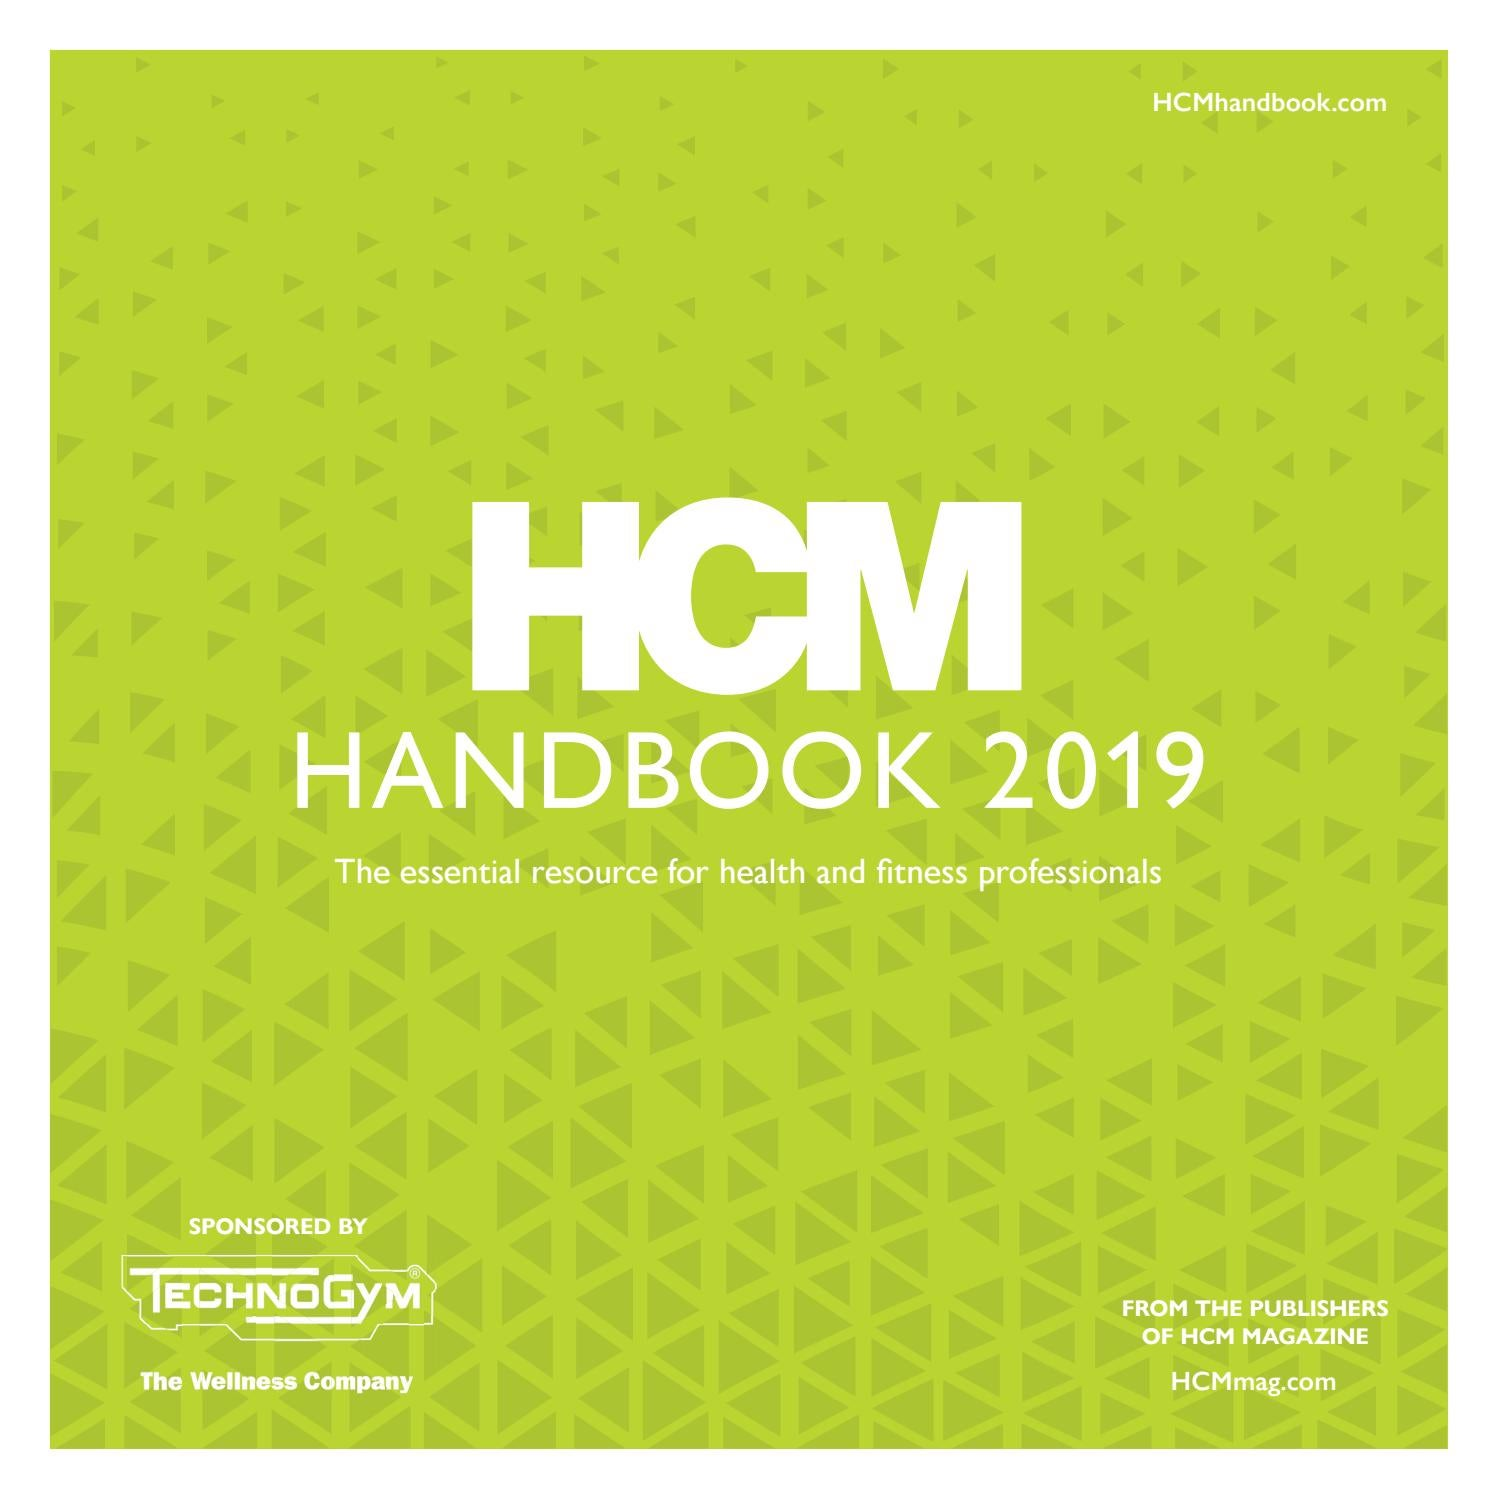 c0f2a4557a035c HCM Handbook 2019 by Leisure Media - issuu